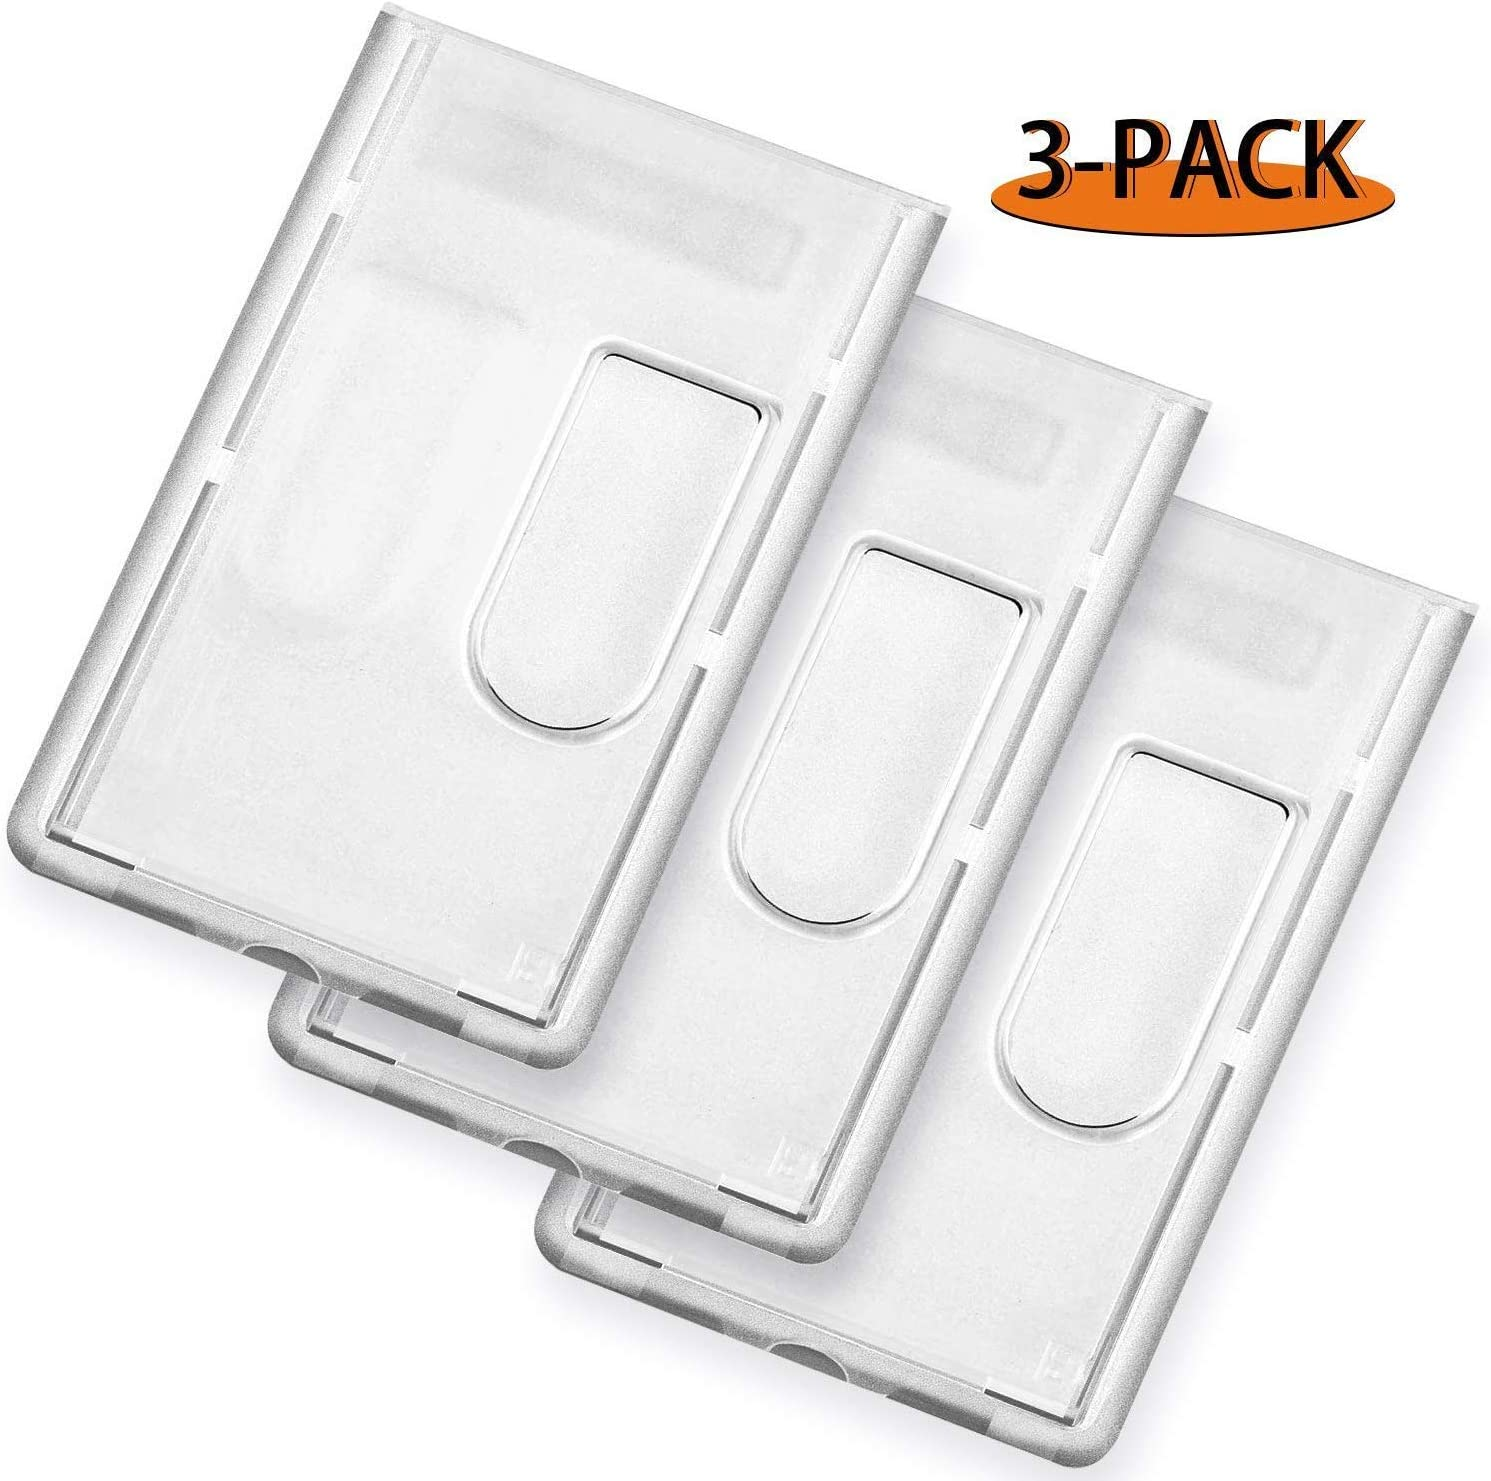 2x Plastic Double Sided  ID Card Holder ID Card Pass Badge Holder Cute Selling